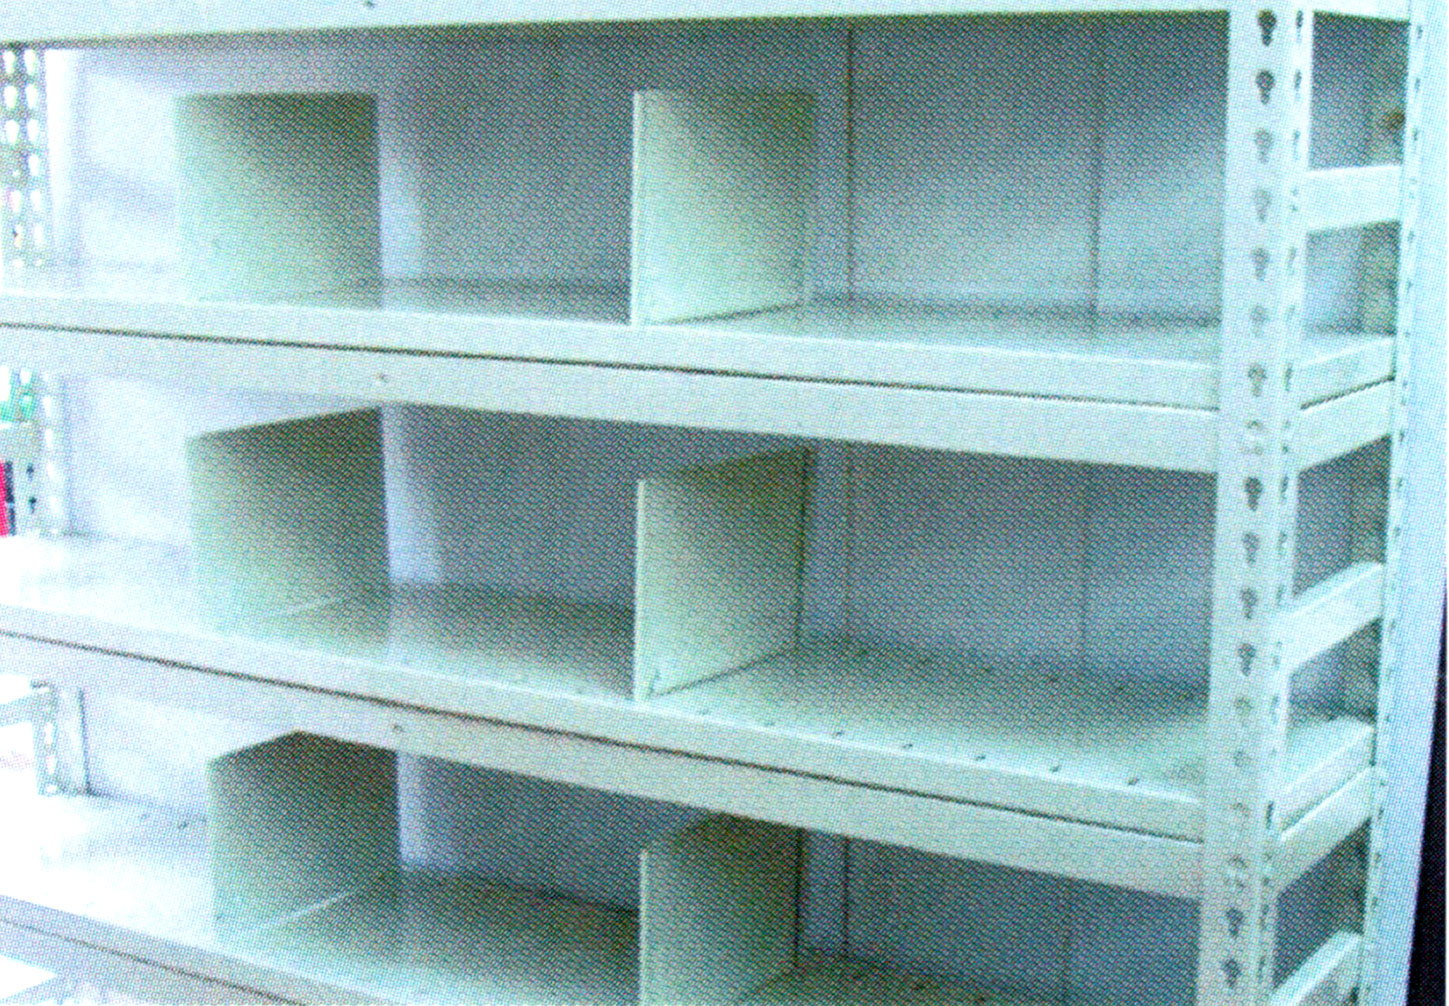 Steel Shelve with Divider